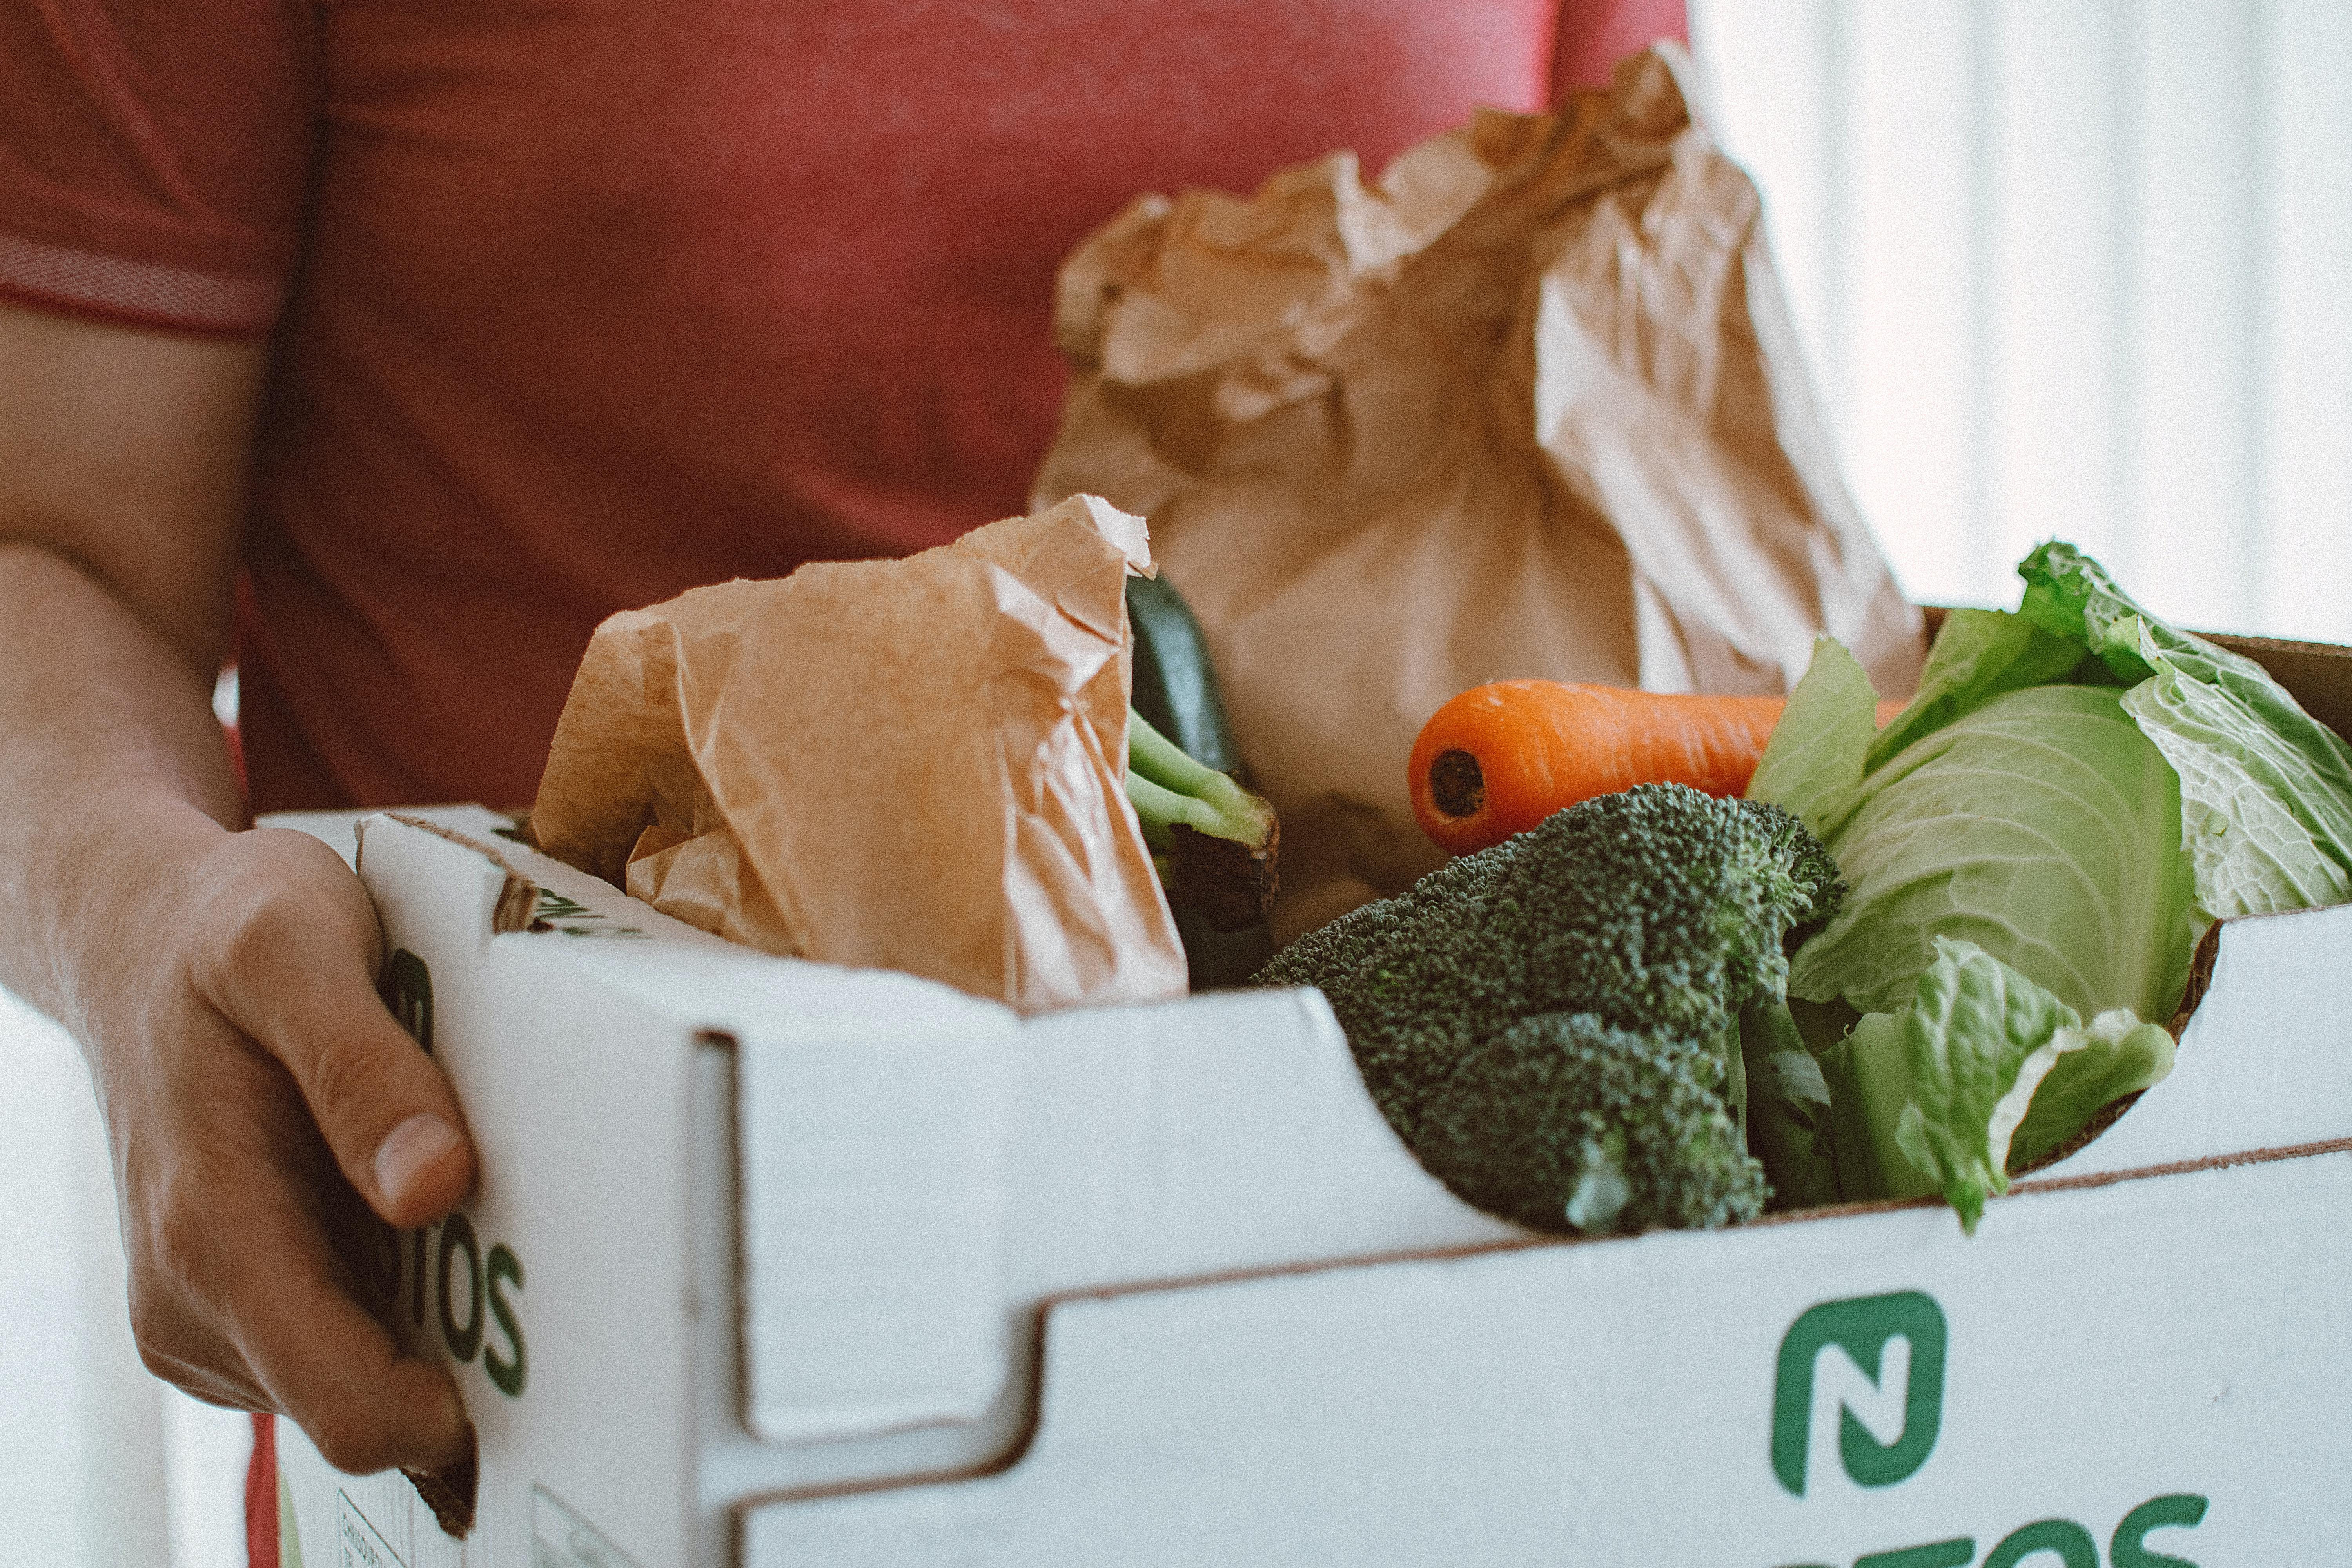 This hospital prescribes free, nutritious food to Ohio residents in need